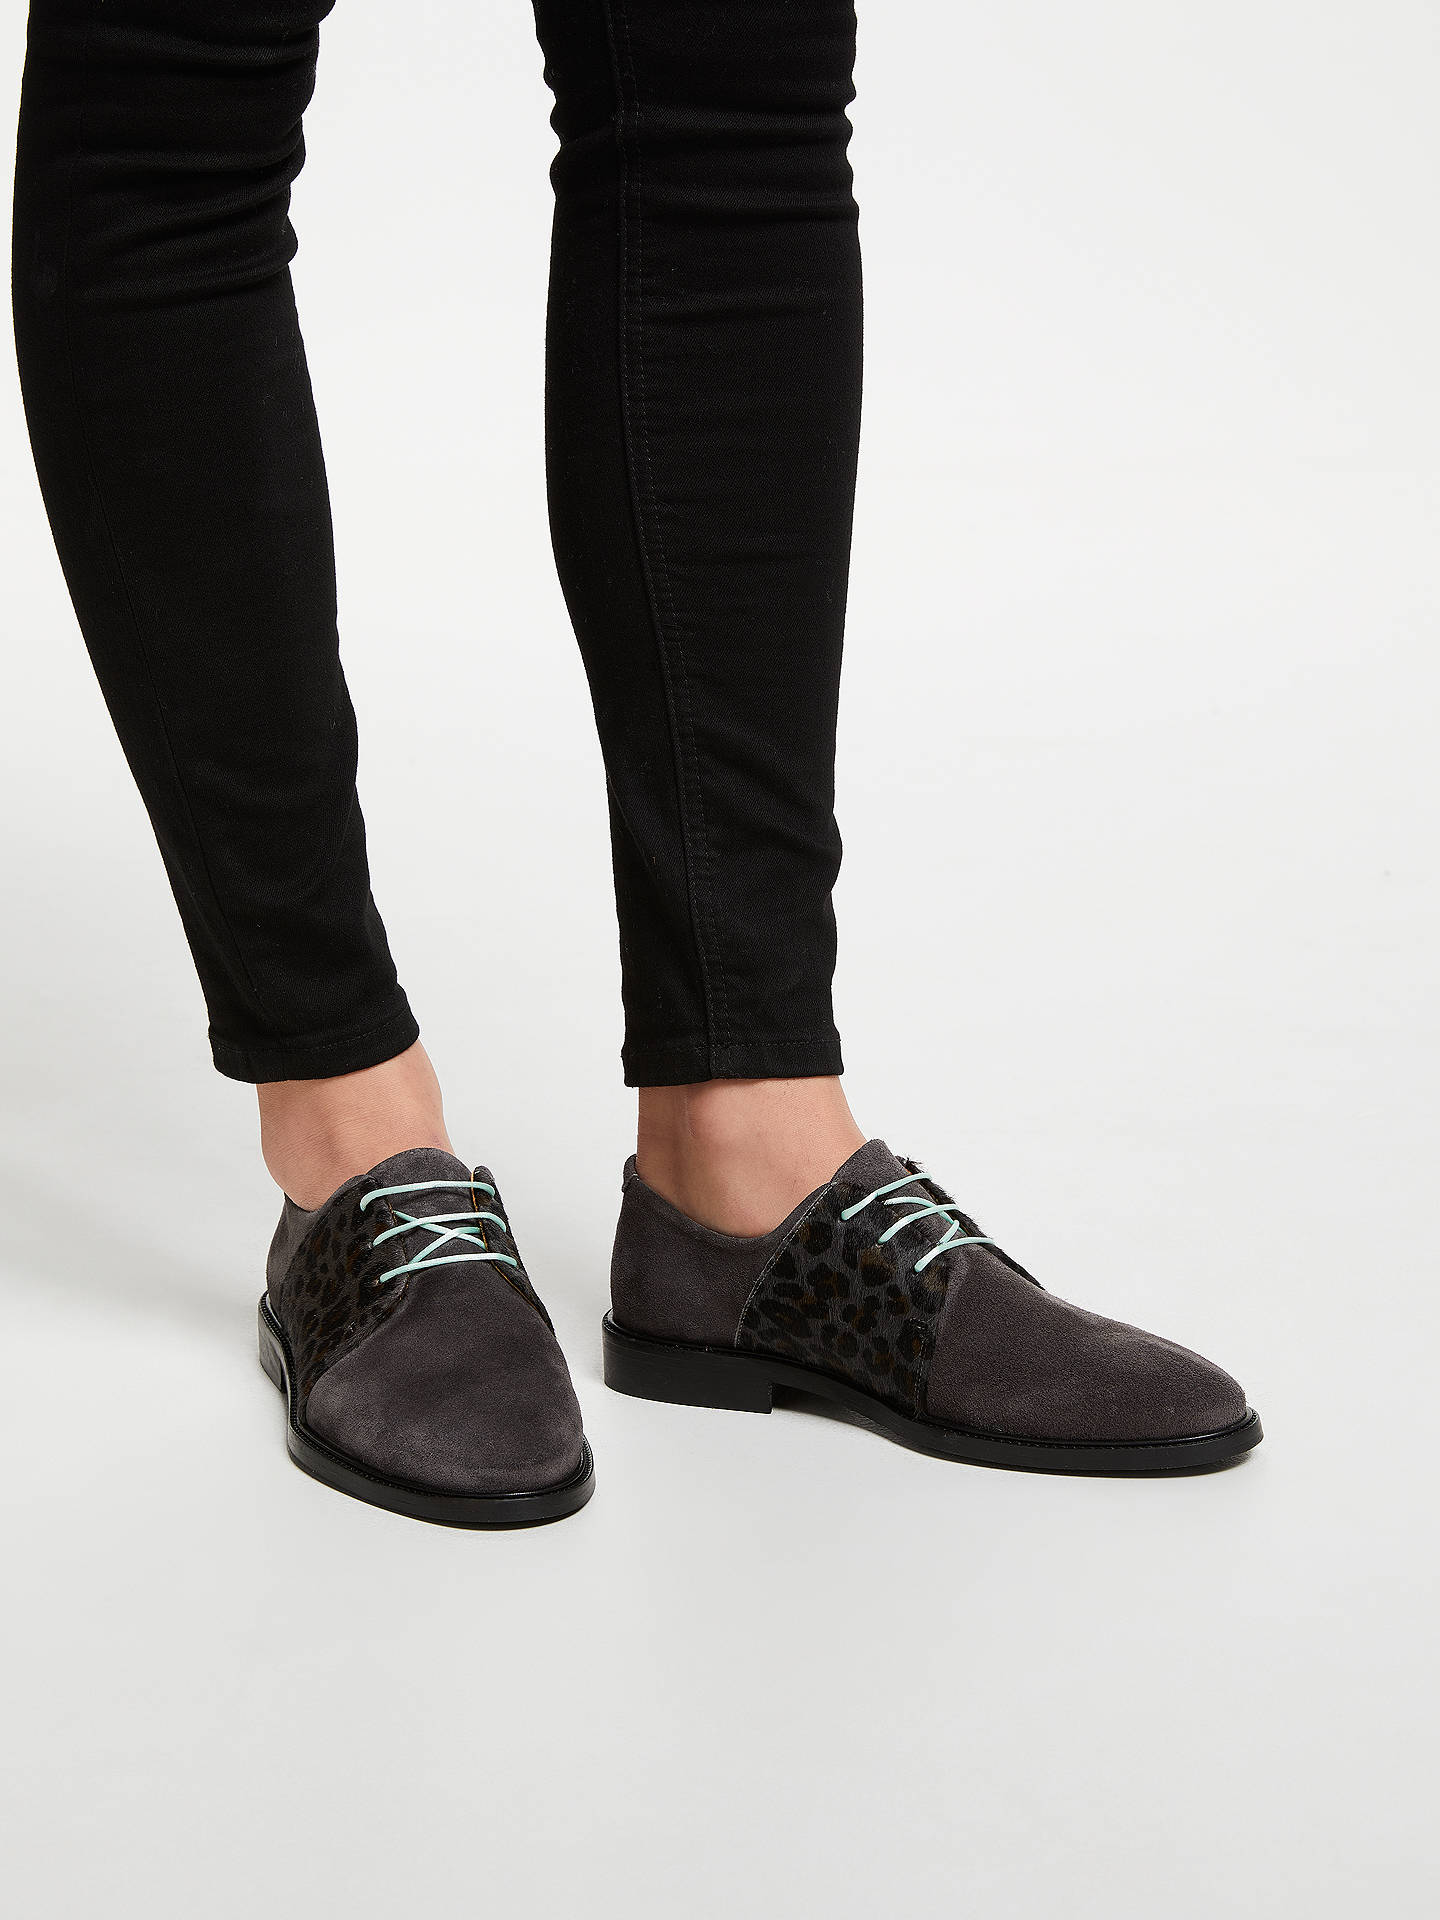 BuyRogue Matilda Skittle Animal Print Brogues, Grey, 8 Online at johnlewis.com